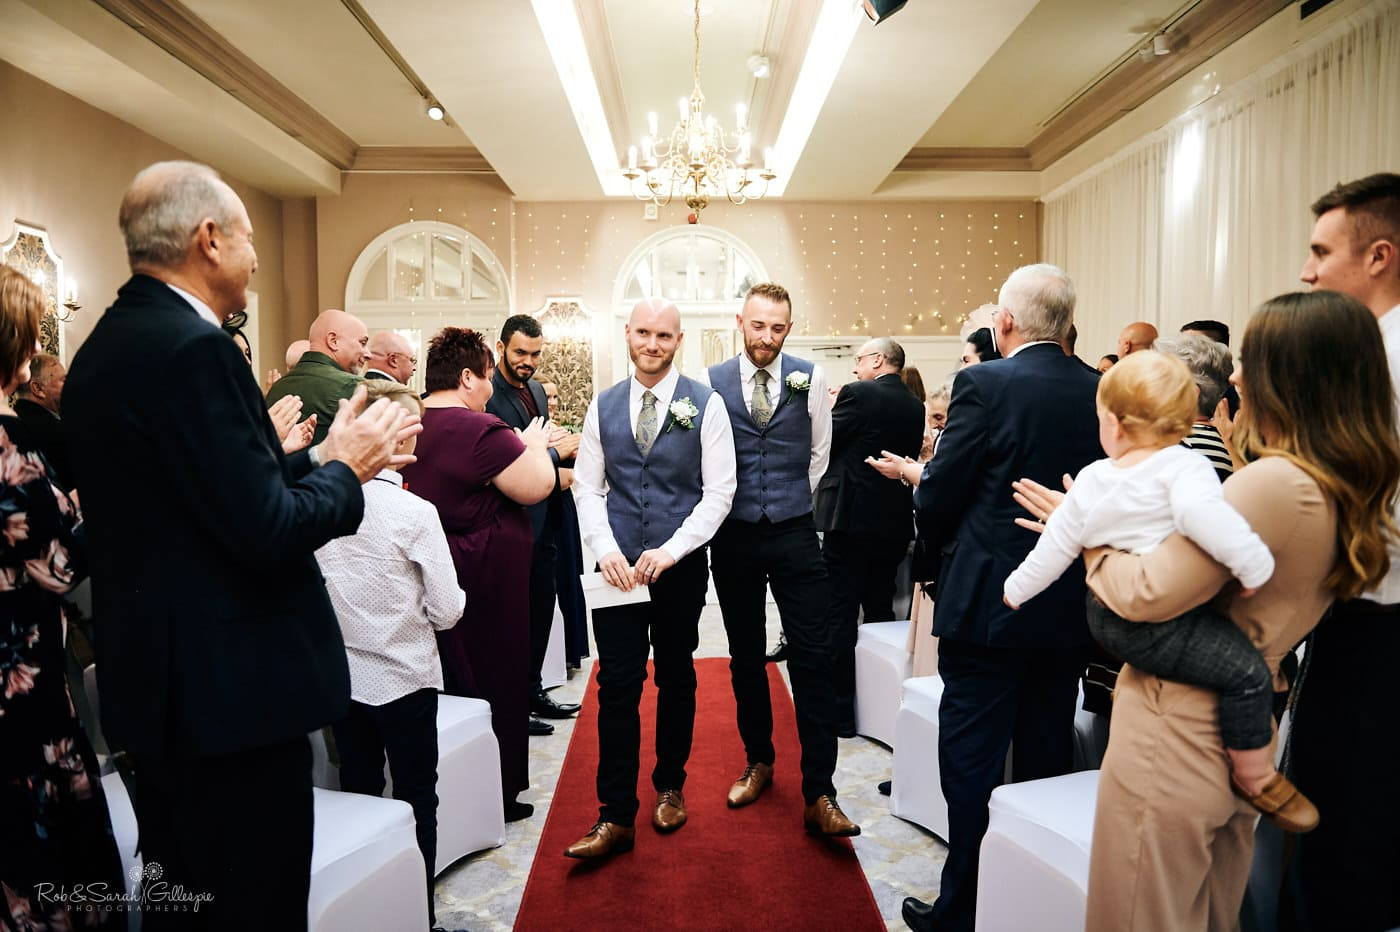 Two grooms married at Moor Hall Hotel